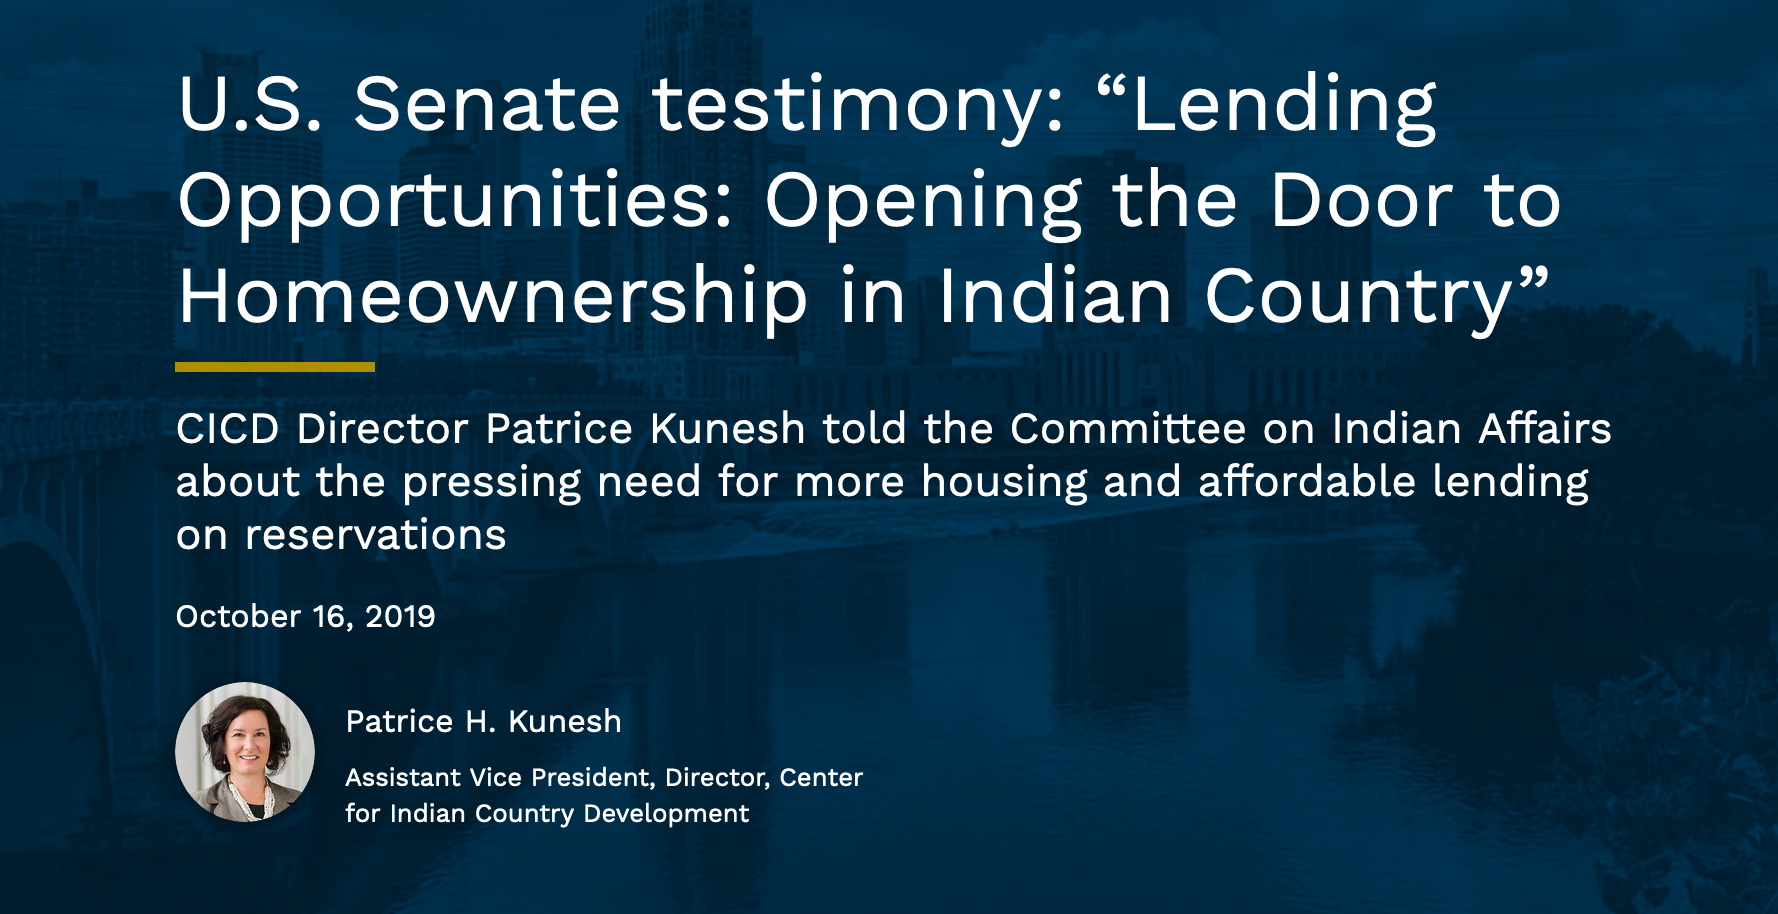 """U.S. Senate testimony: """"Lending Opportunities: Opening the Door to Homeownership in Indian Country"""""""